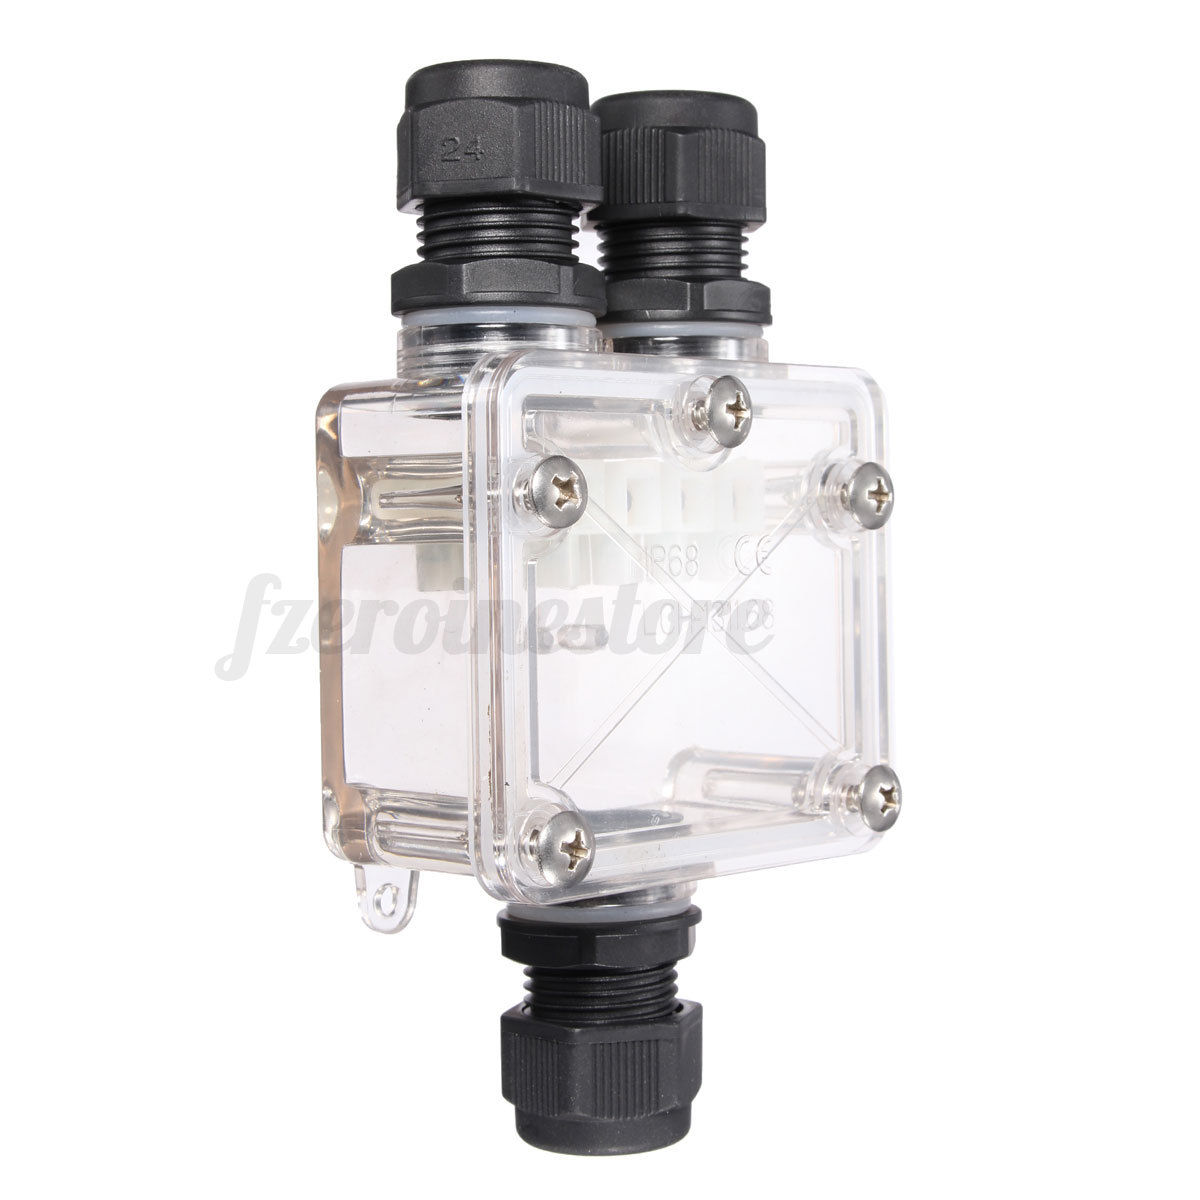 Outdoor Waterproof Electrical Box Outdoor Free Engine Image For User Manual Download